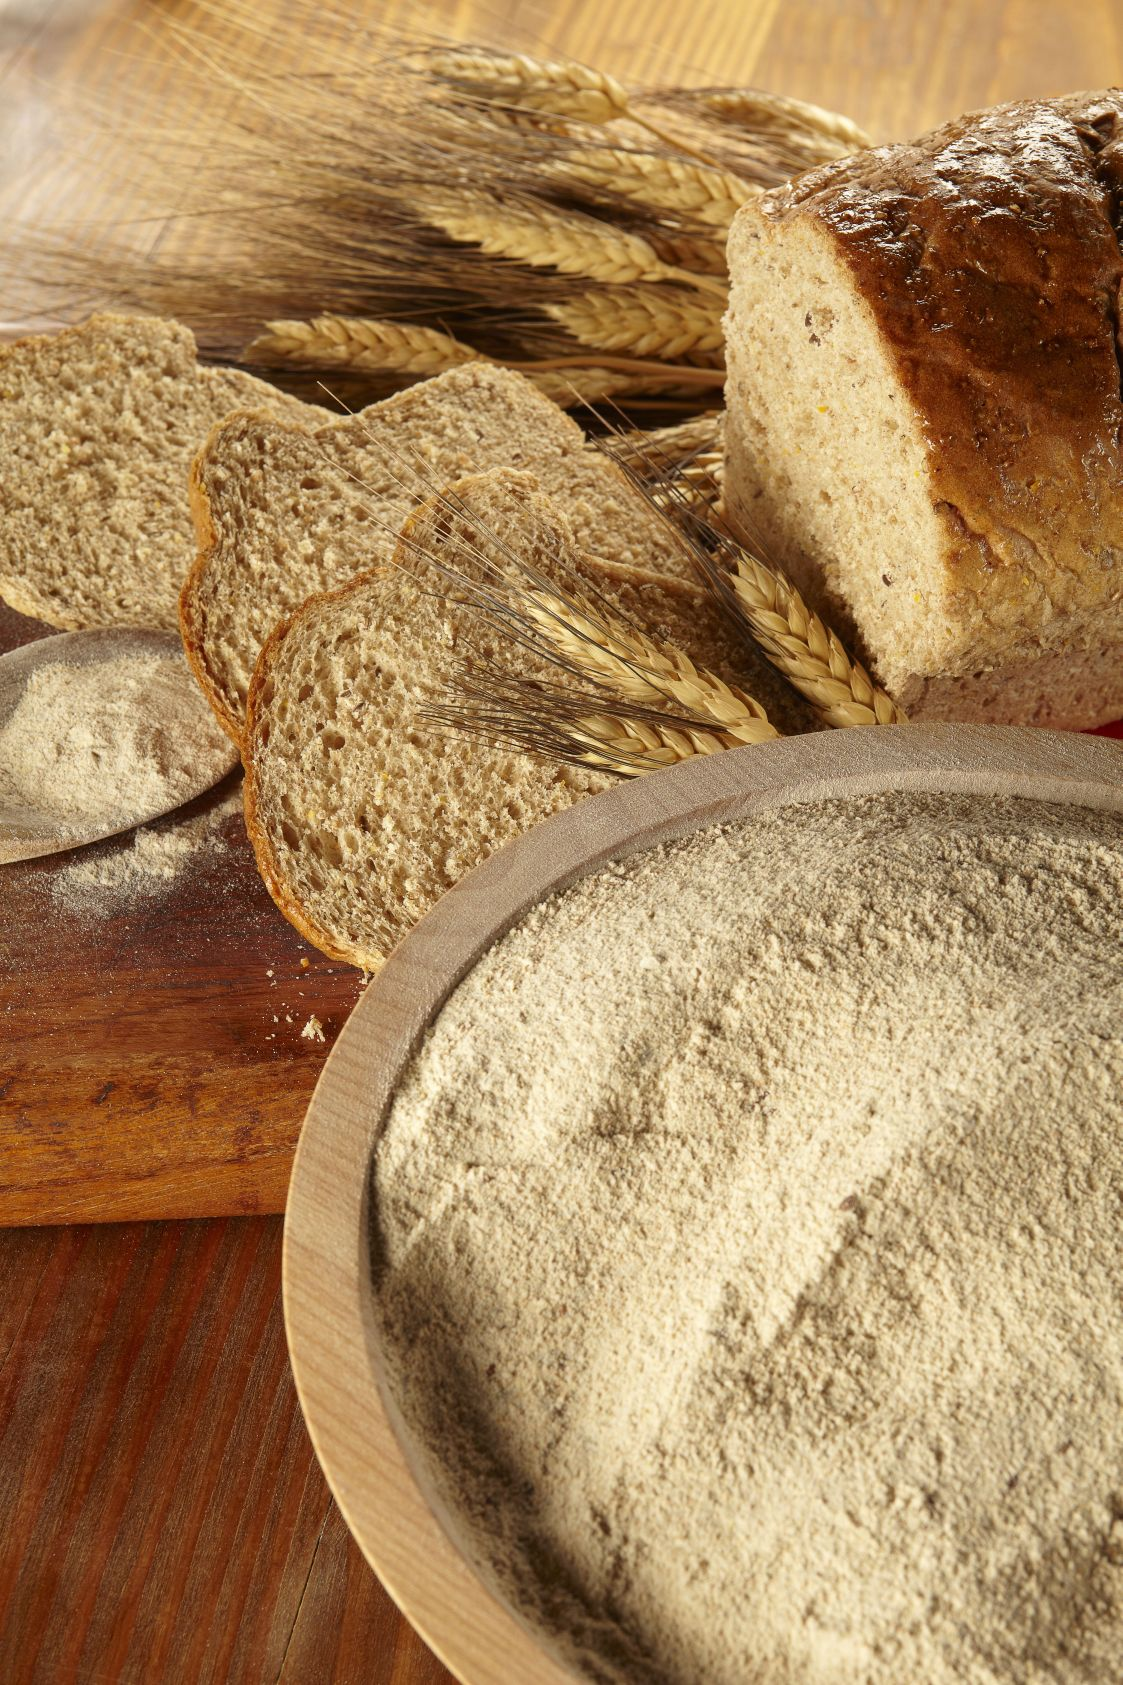 Try our recipe for 100% Stone Ground Whole Wheat Bread or take a shortcut and use our 100% Whole Wheat Bread Mix for delicious, fresh whole grain bread.